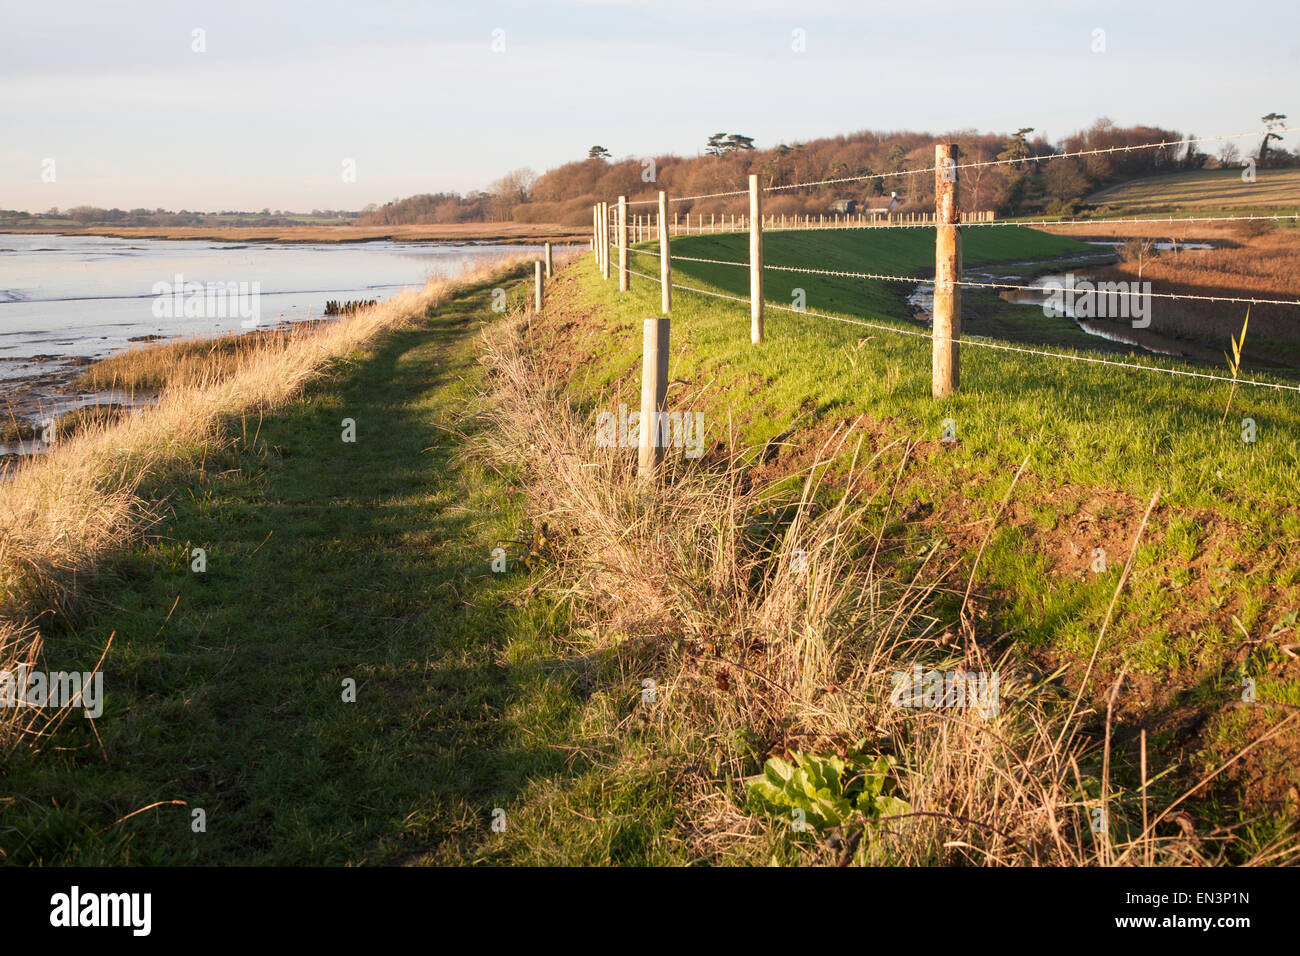 Newly repaired river flood defence wall, River Deben, Ramsholt, Suffolk, England, UK - Stock Image